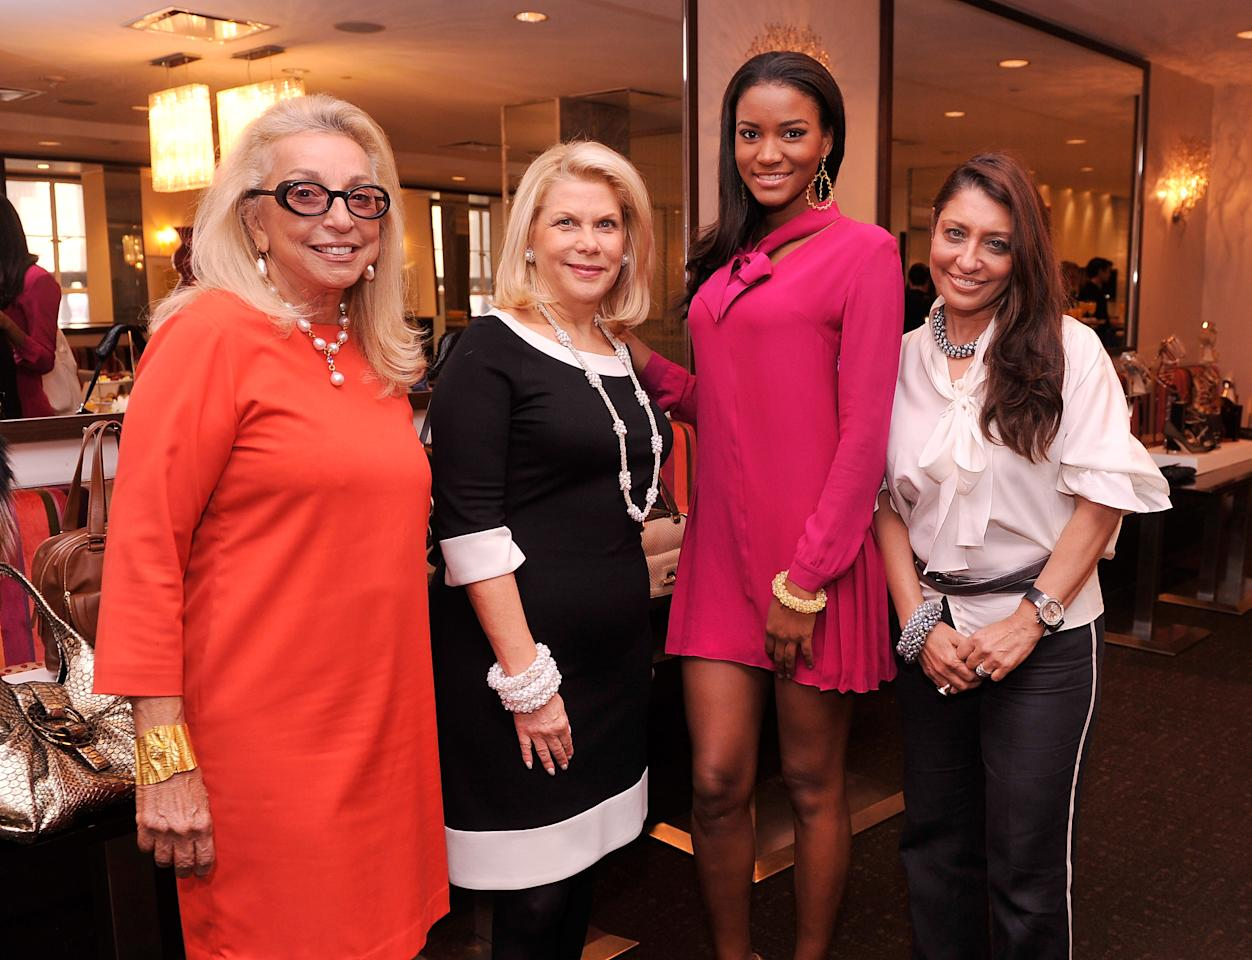 NEW YORK, NY - SEPTEMBER 21:  (L-R)  Socialite Eleanora Kennedy, producer/philanthropist Francine LeFrak, Miss Universe 2011 Leila Lopes, and Muna Rihani from UN Women For Peace attend the UN Women For Peace And Same Sky Ethical Shopping Event at Saks Fifth Avenue on September 21, 2012 in New York City.  (Photo by Stephen Lovekin/Getty Images)